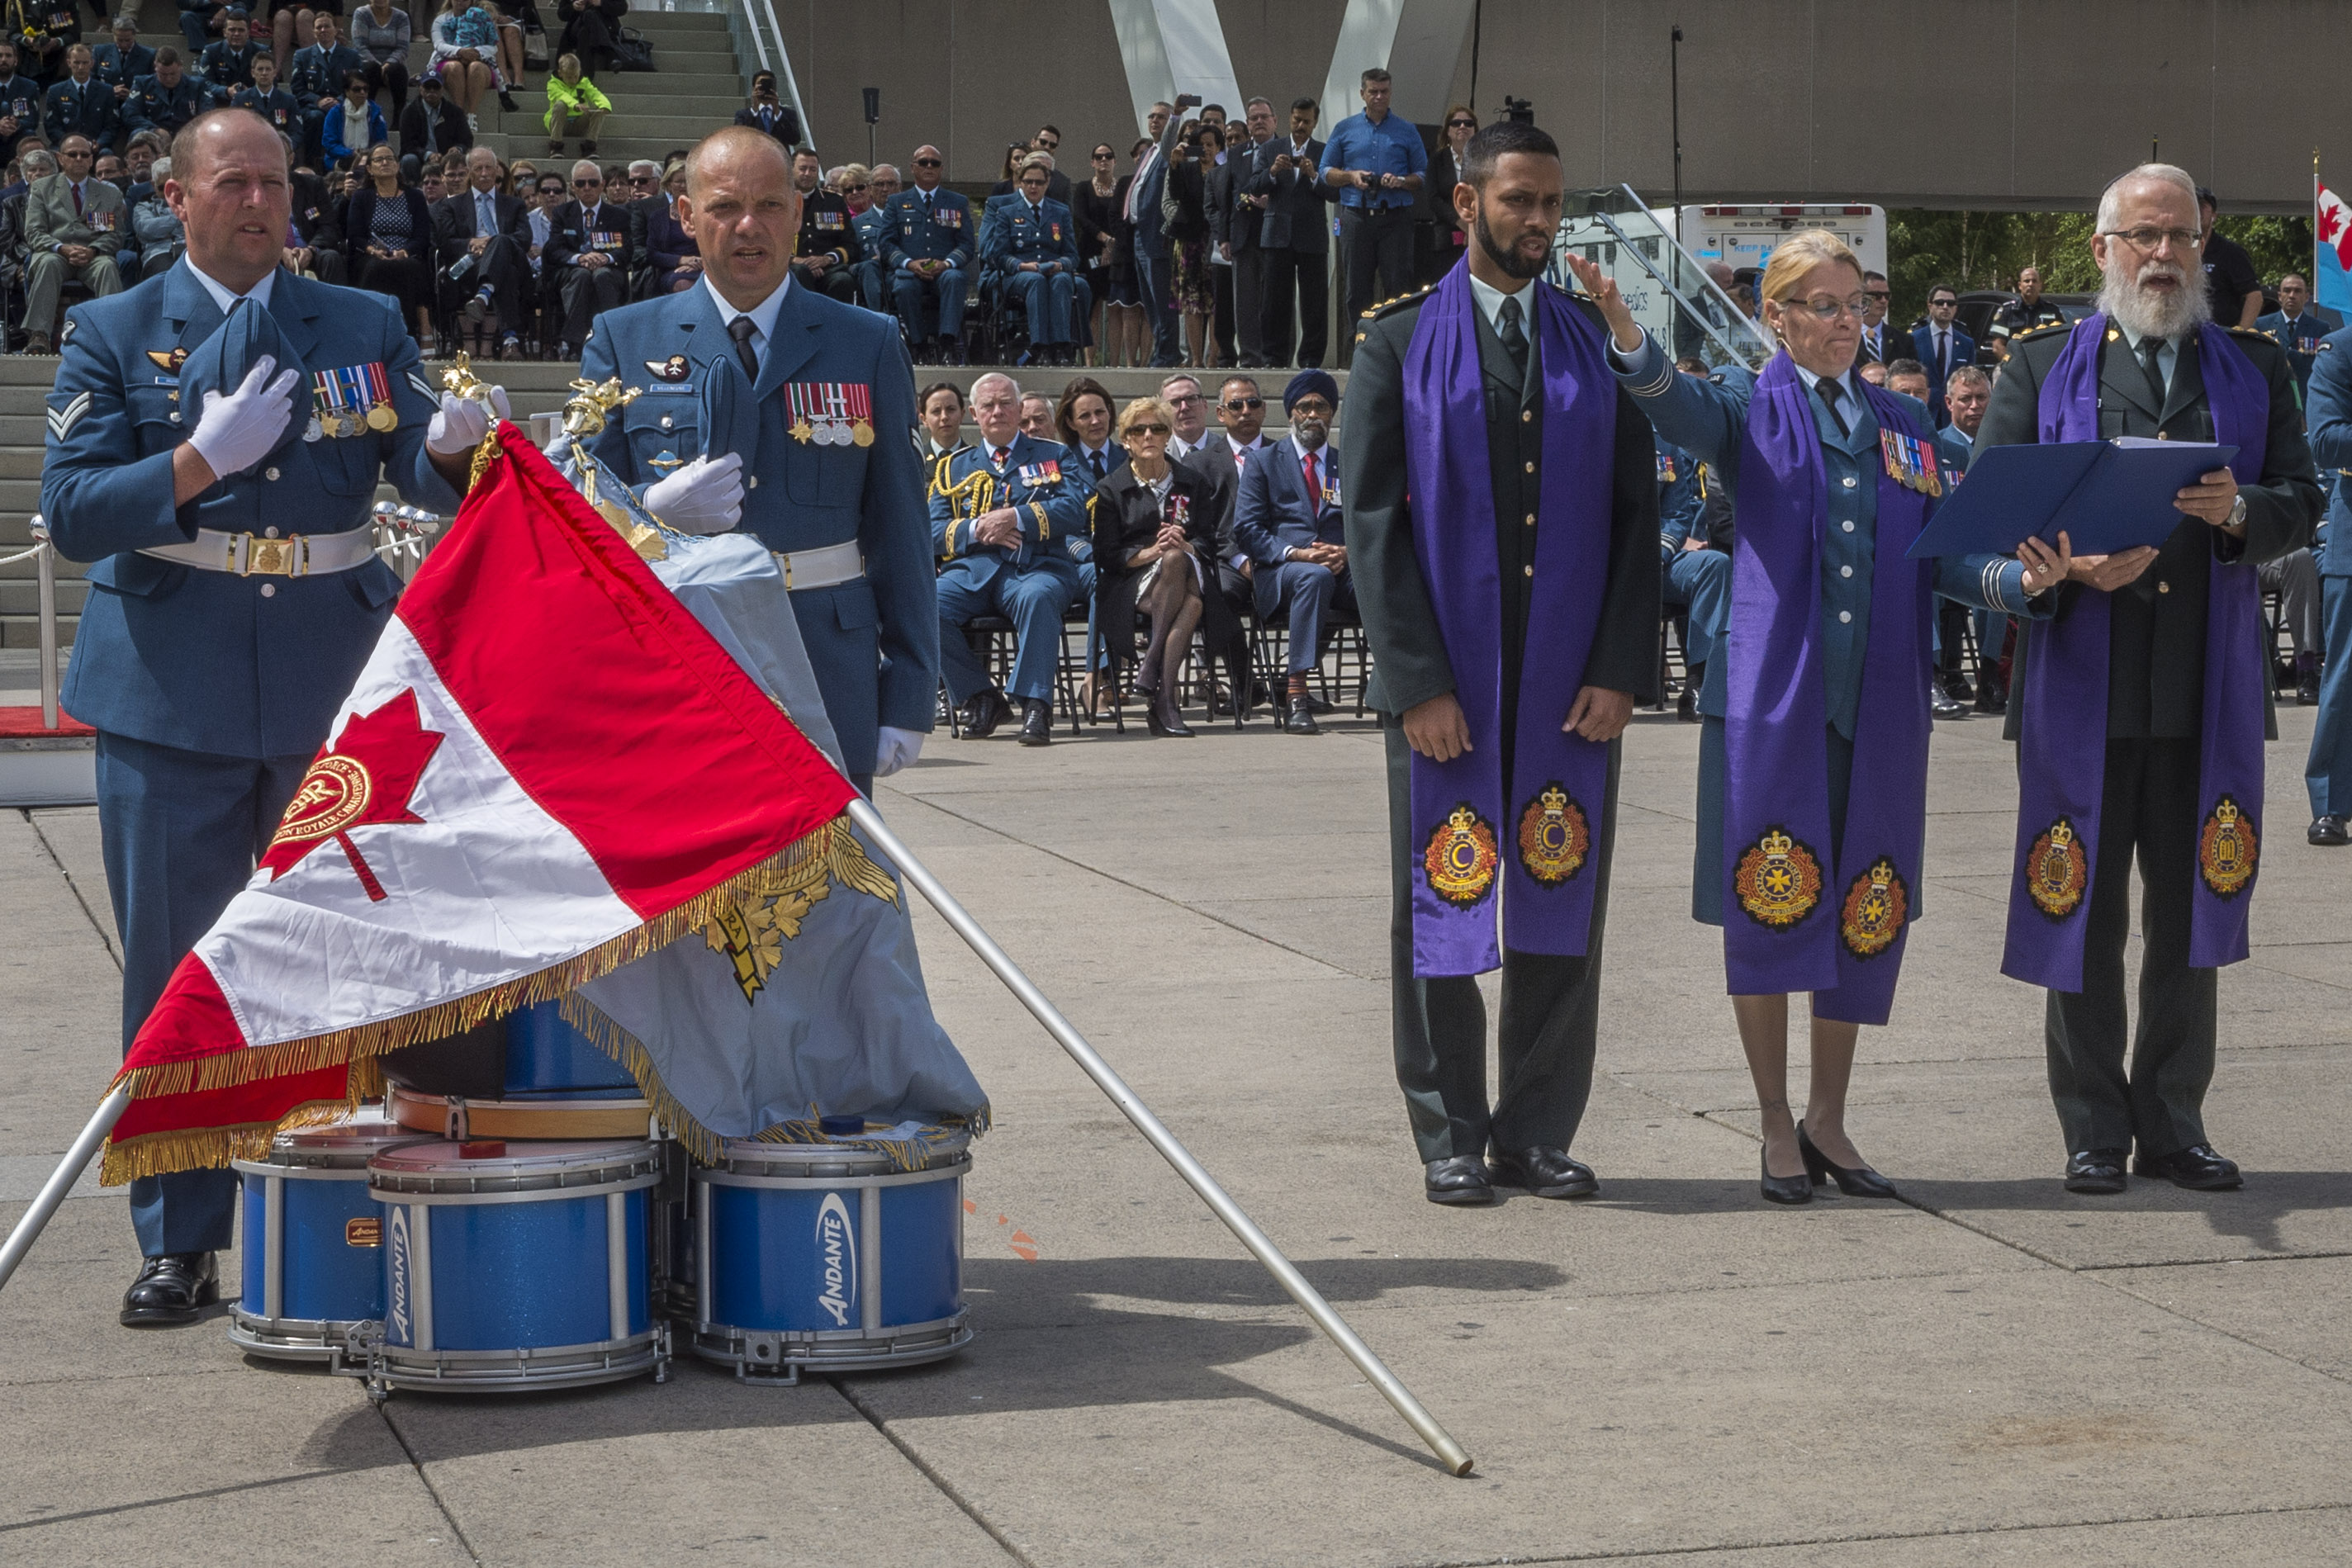 The RCAF chaplain, Lieutenant-Colonel Martine Bélanger, accompanied by Imam Captain Ryan Carter (left) and Rabbi Captain Lazer Danzinger (right), consecrates the RCAF's new Colours on September 1, 2017. Through this means, the Colours are sanctified and devoted to service as symbols of honour and duty. Further, all members of the Royal Canadian Air Force, through those on parade, rededicate themselves to the ideals the Colours represent. PHOTO: Corporal Alana Morin, FA03-2017-0114-001